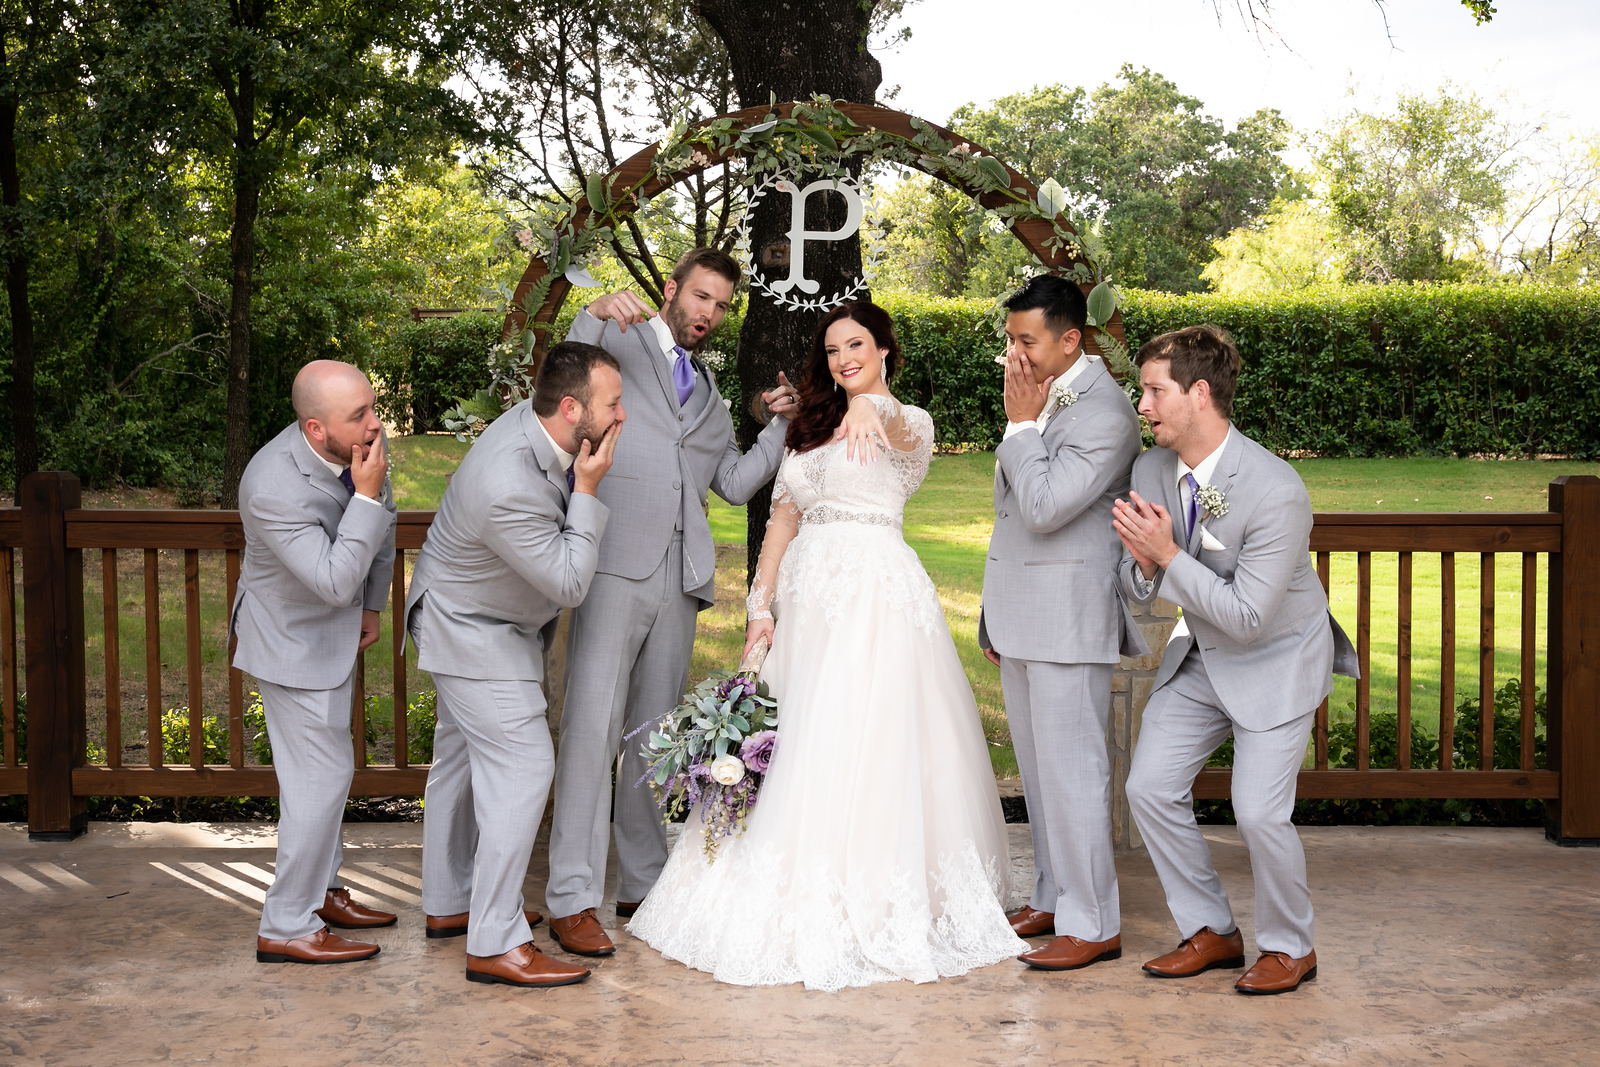 five groomsmen wearing grey suits with cognac colored shoes jokingly aweing at the bride's wedding ring